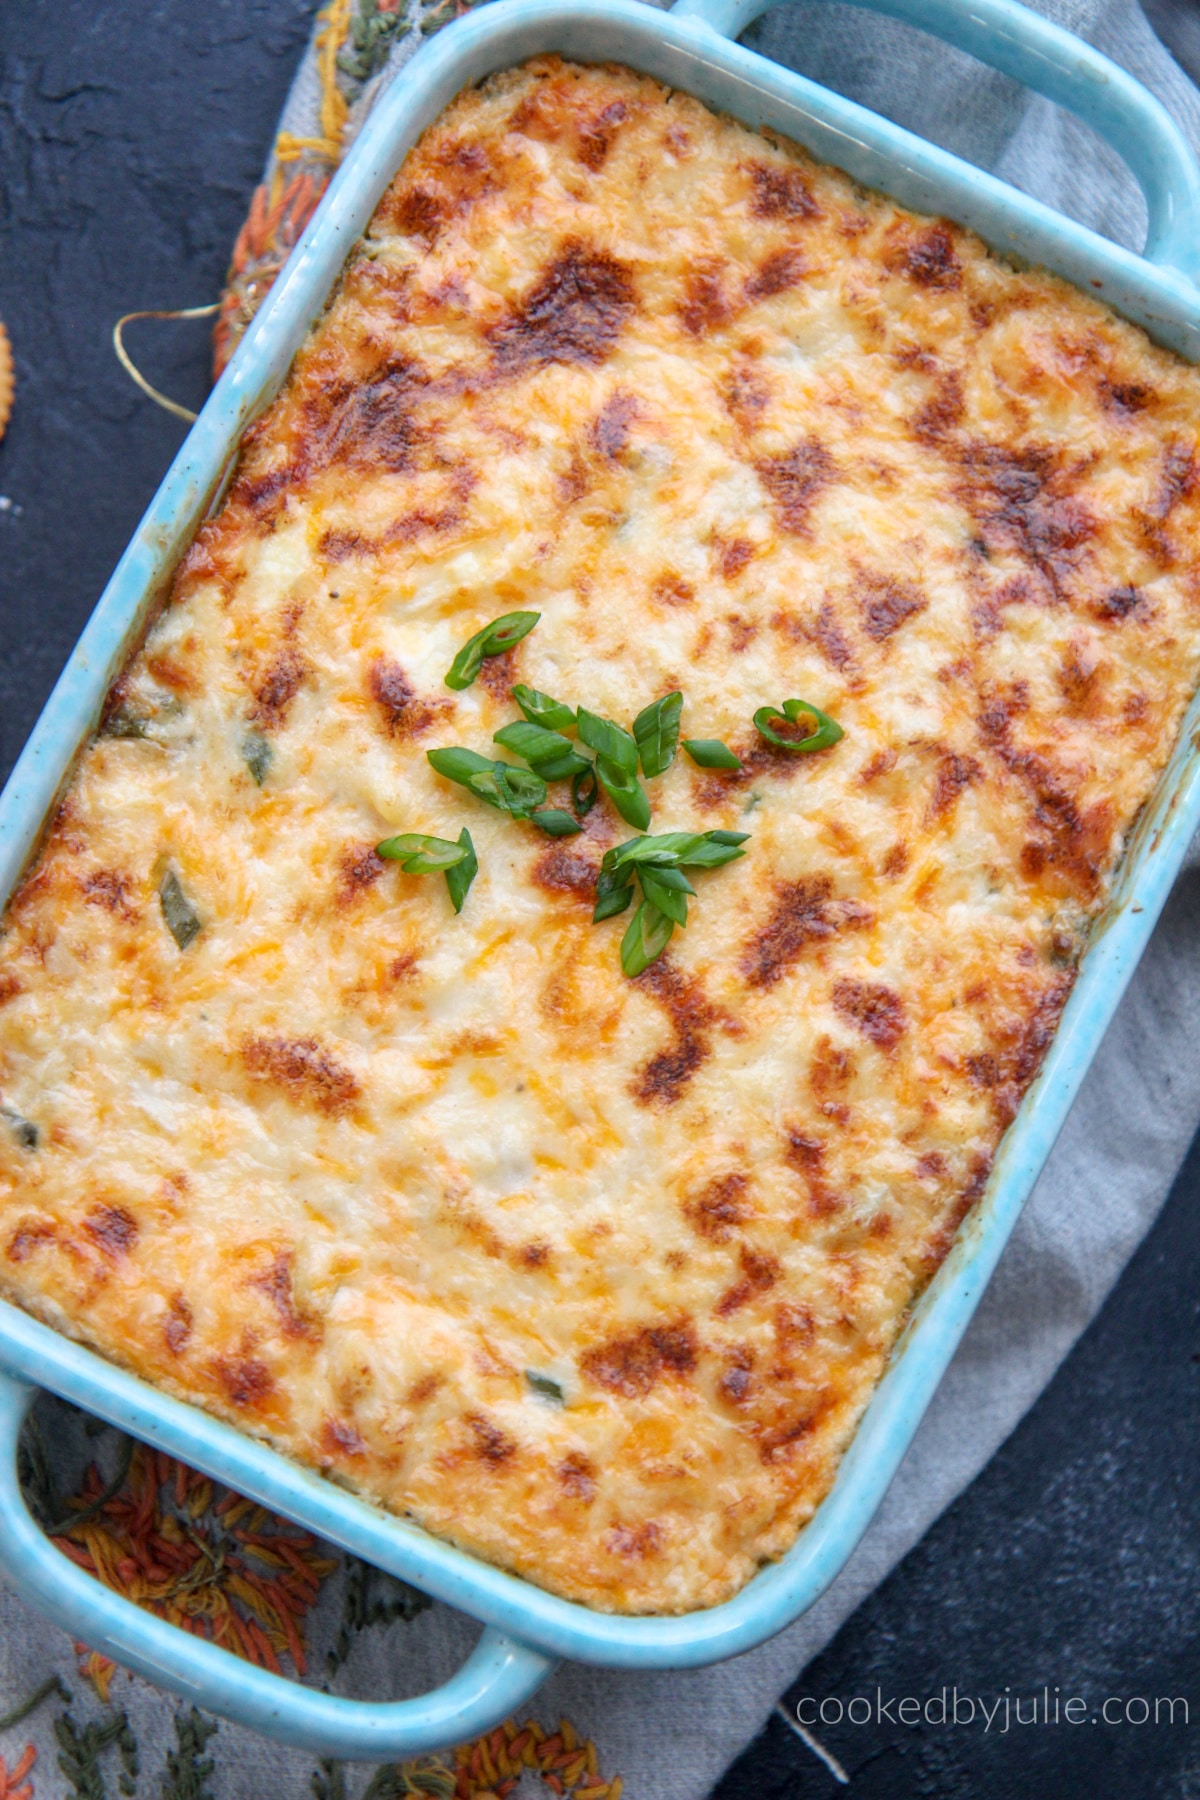 Hot crab dip in a blue baking dish